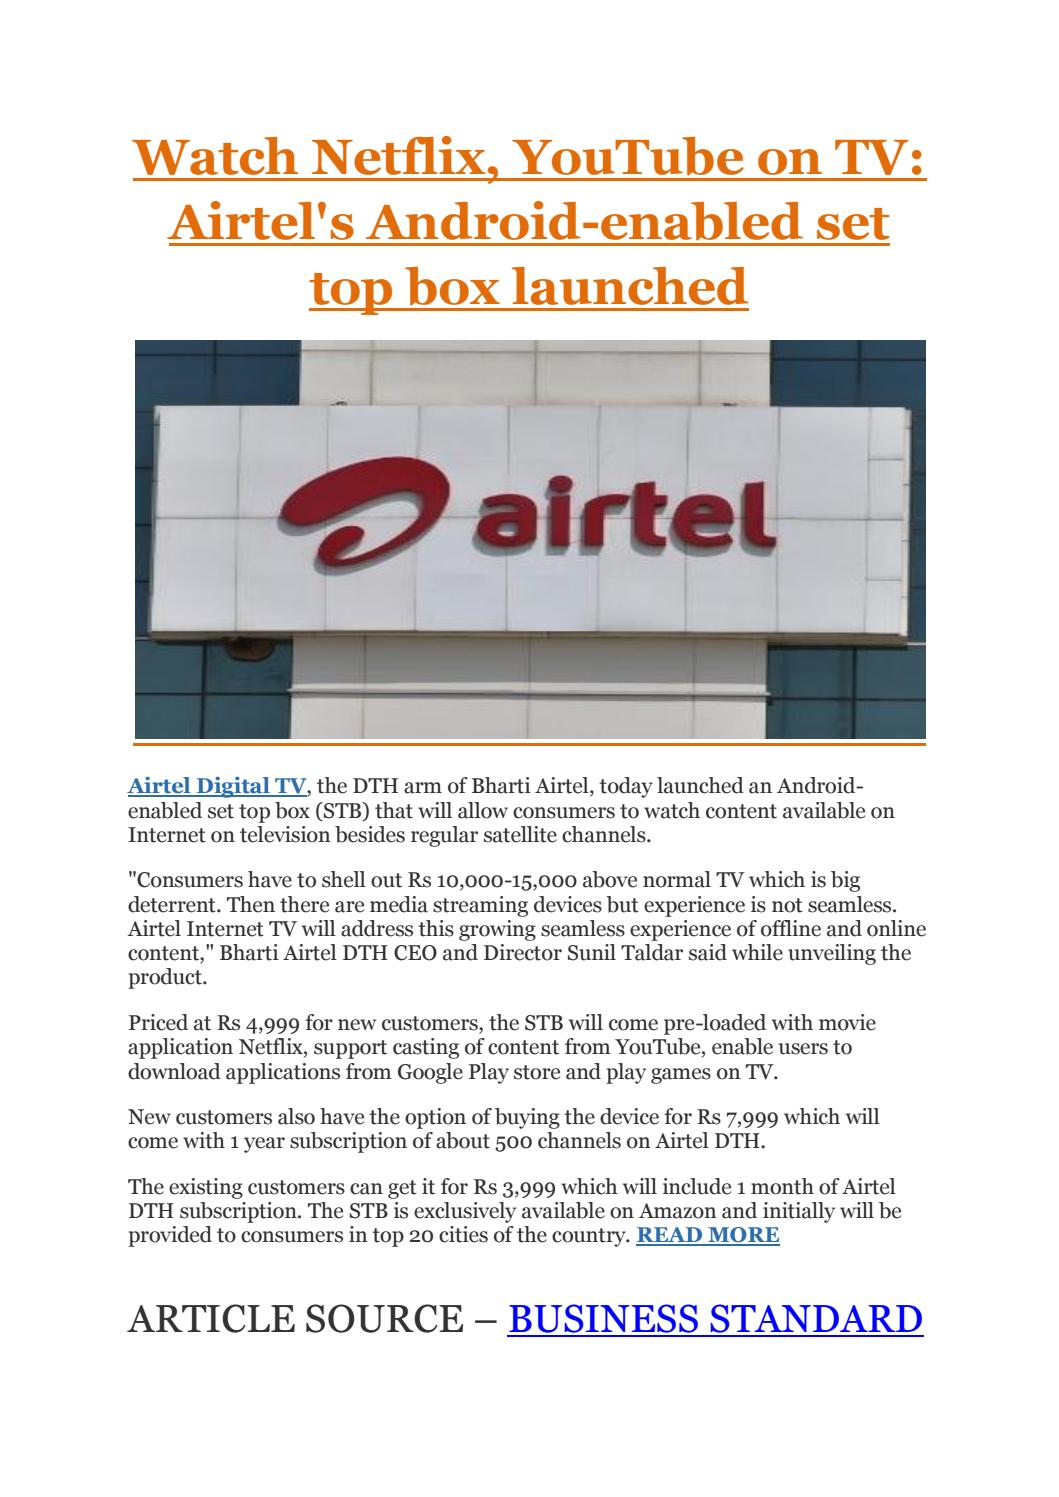 Watch netflix, youtube on tv airtel's android enabled set